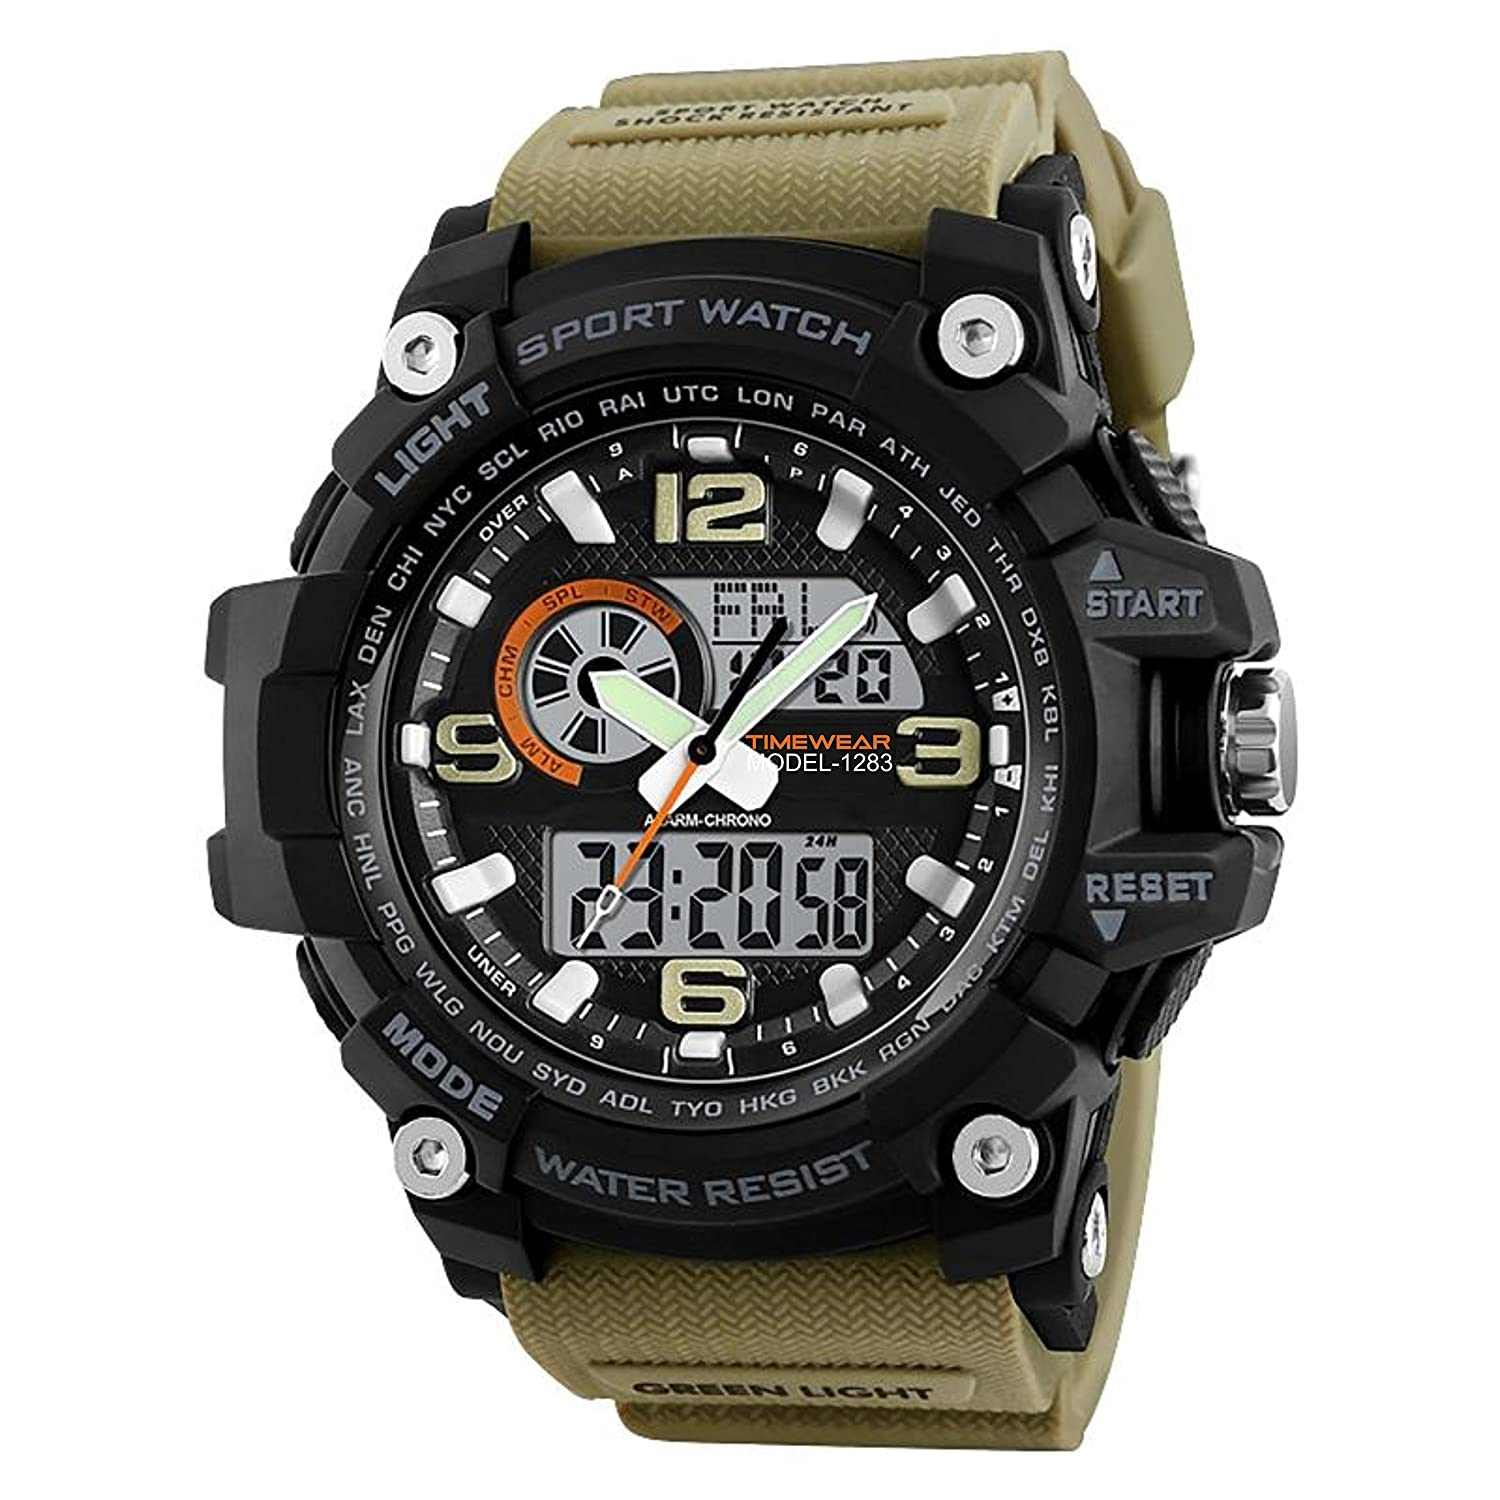 Timewear Military Series Analogue Digital Black Dial Watch For Men & Boys